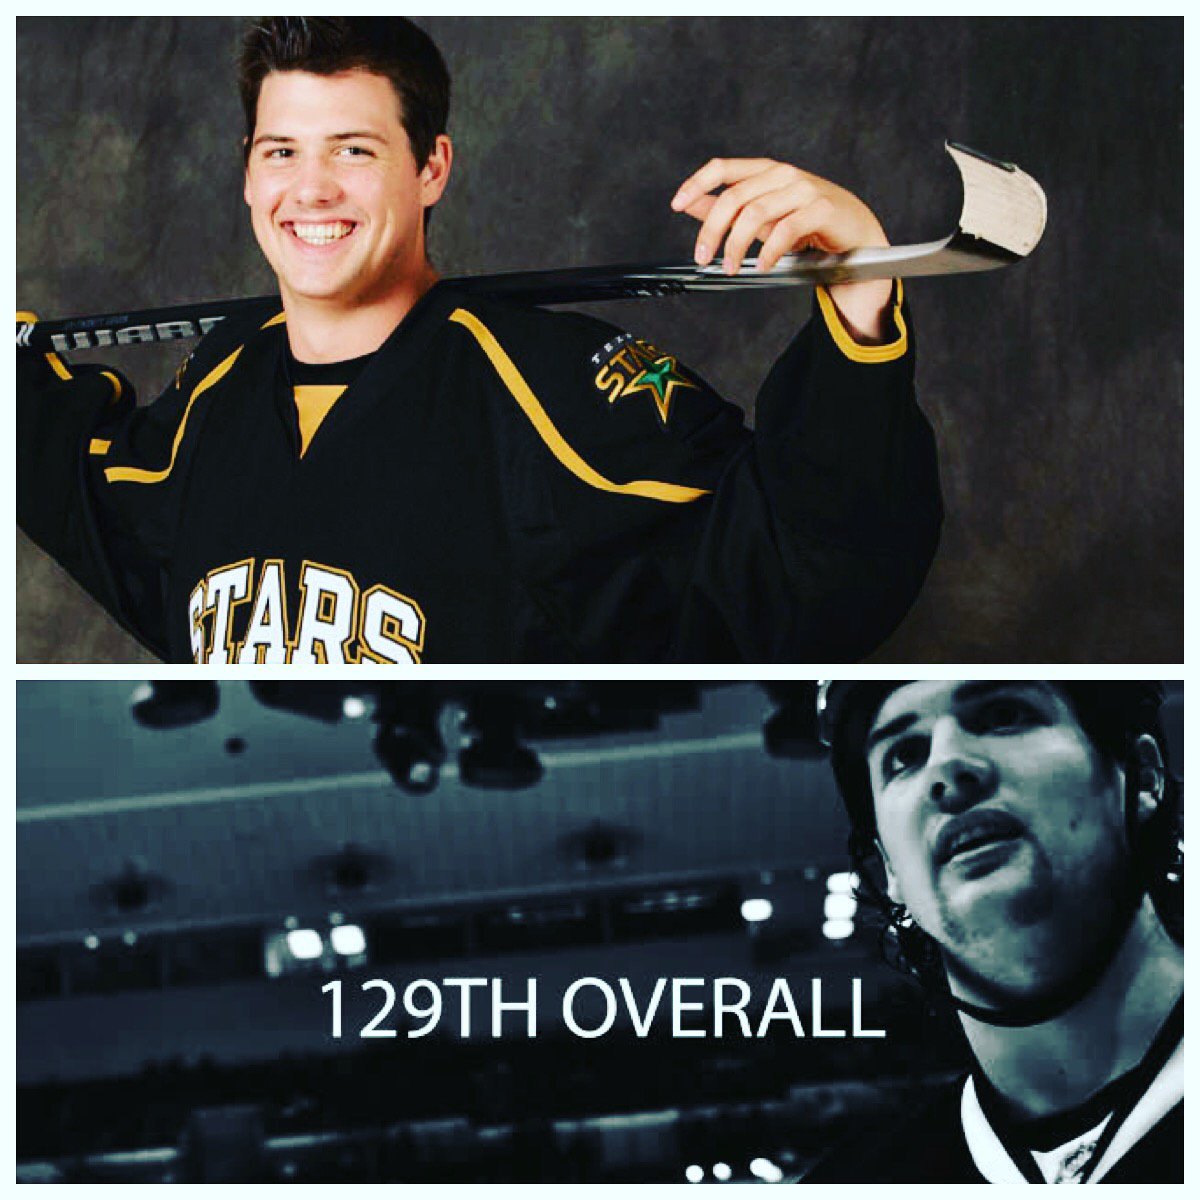 #TBT 9 years ago today the @DallasStars drafted @jamiebenn14 in the 5th round of the 2007 @NHL Draft. #TheCaptain https://t.co/WS4ogcvPd7